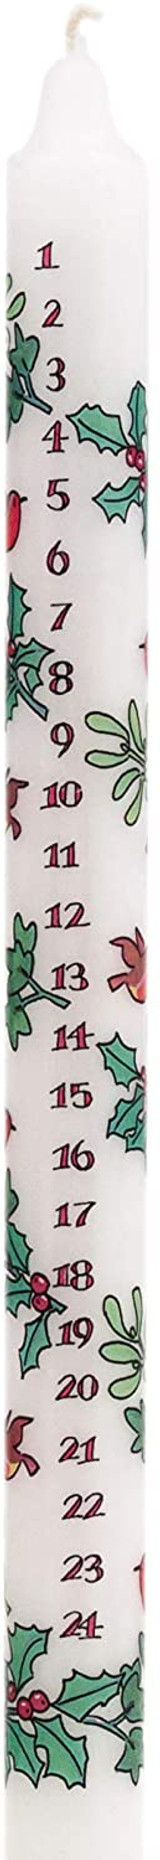 Alison Gardiner Holly & Ivy Advent Candle